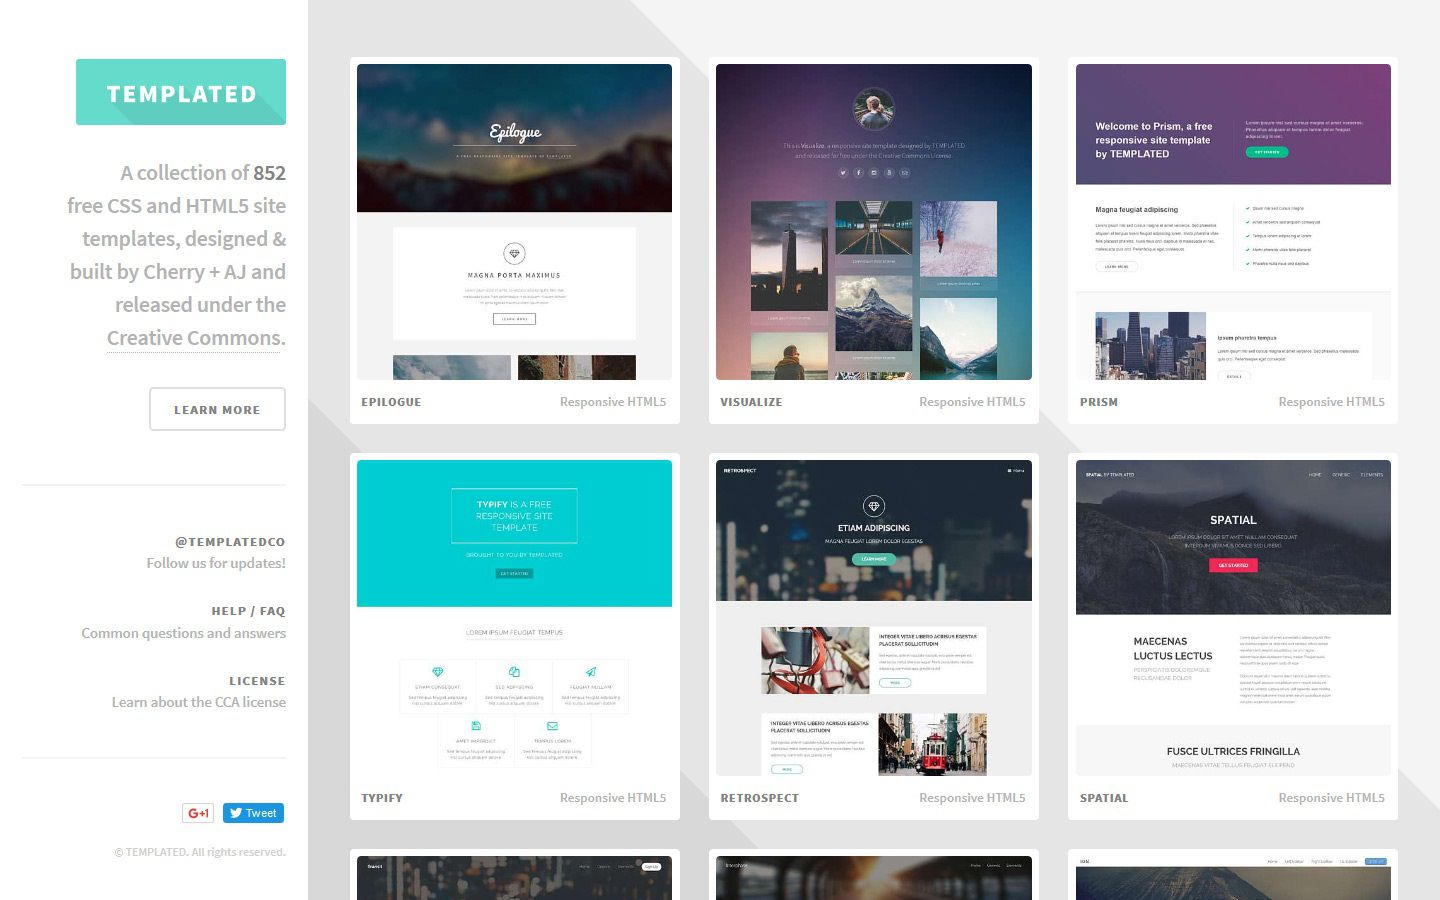 006 Rare Free Responsive Html5 Template High Resolution  Download For School Bootstrap WebsiteFull